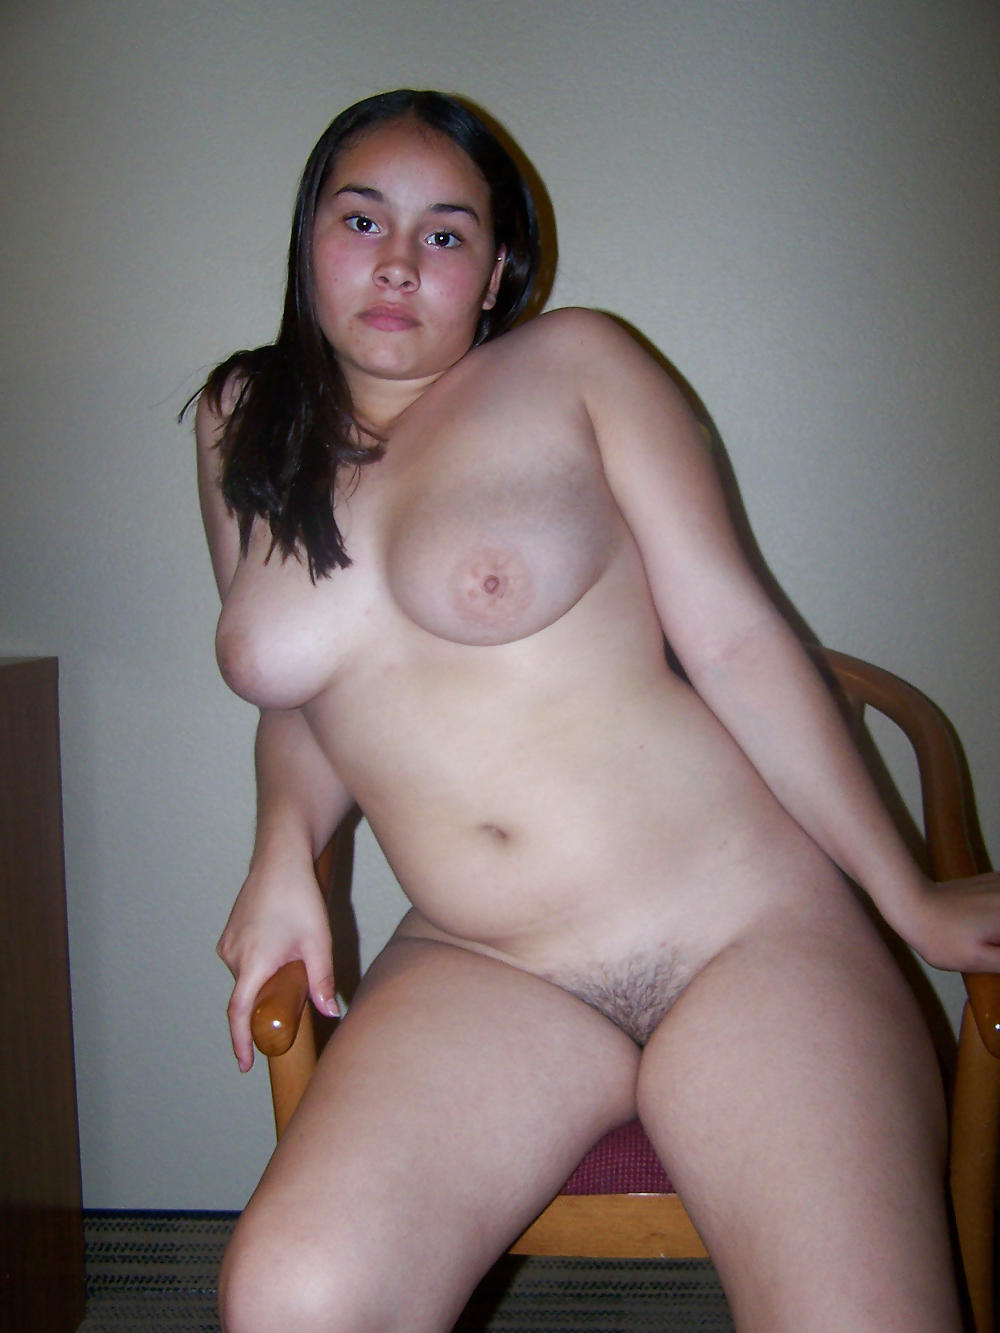 Nude chubby girls tumblr